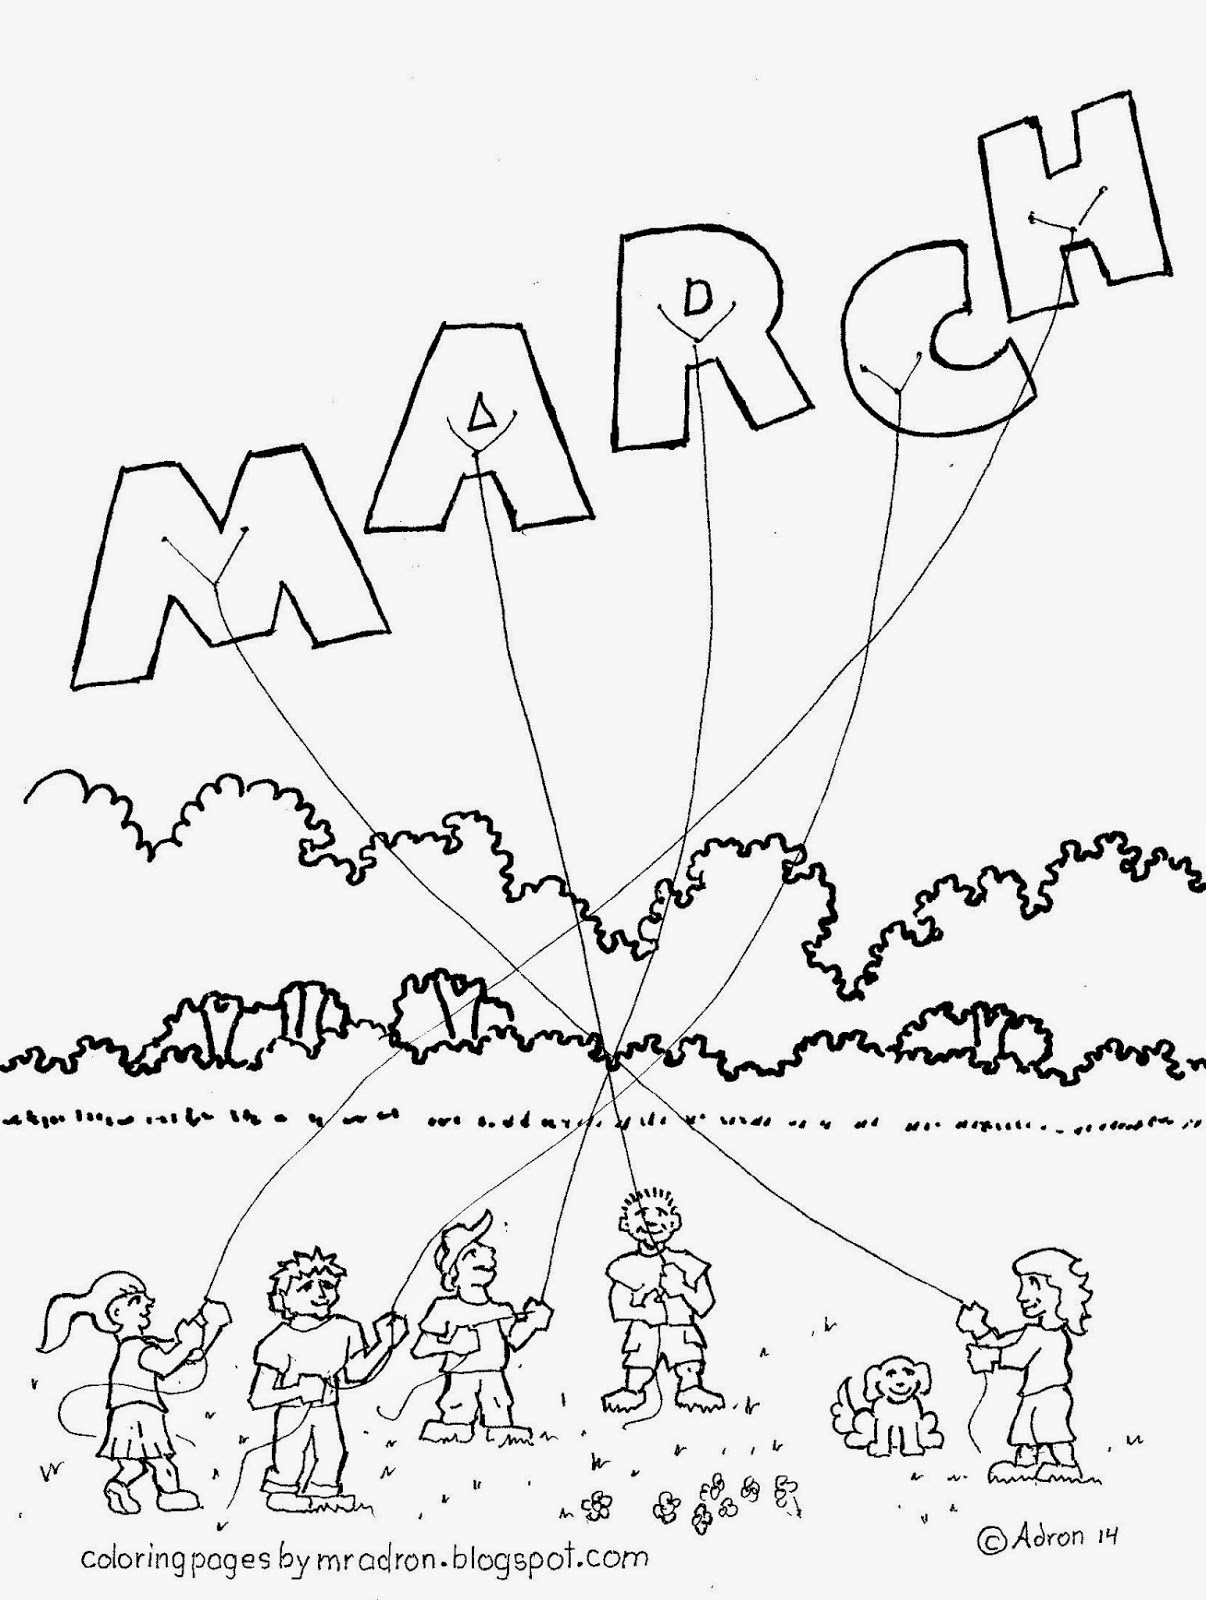 Coloring Pages for Kids by Mr. Adron: Month Of March, Free